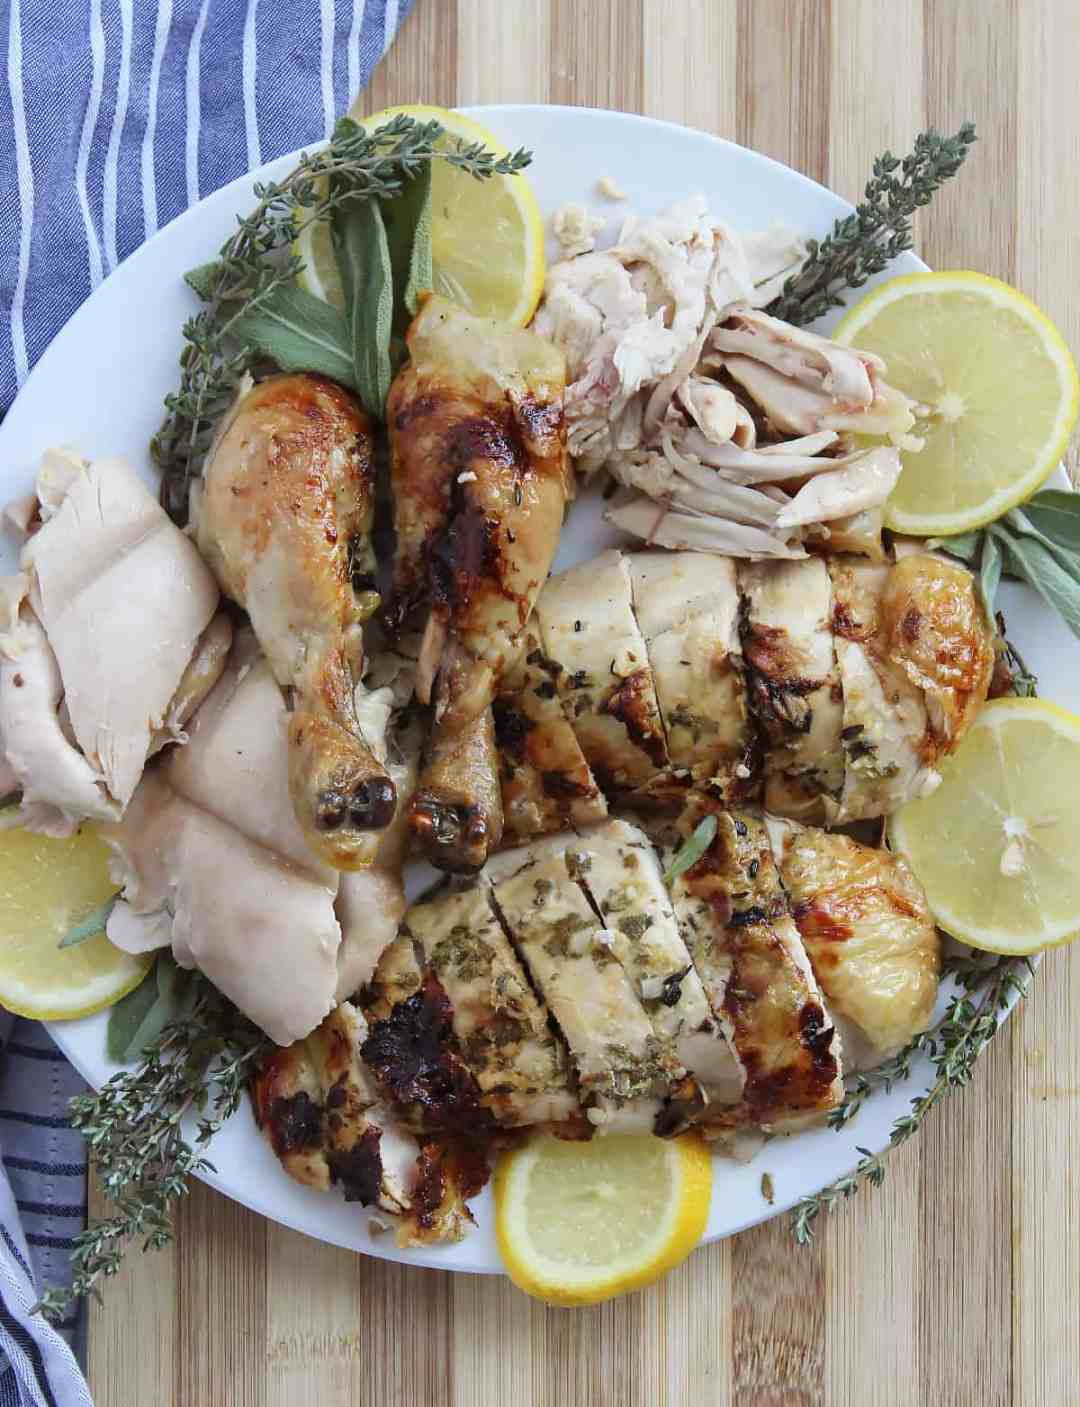 Pieces of slow roasted chicken on a plate with lemon and herbs